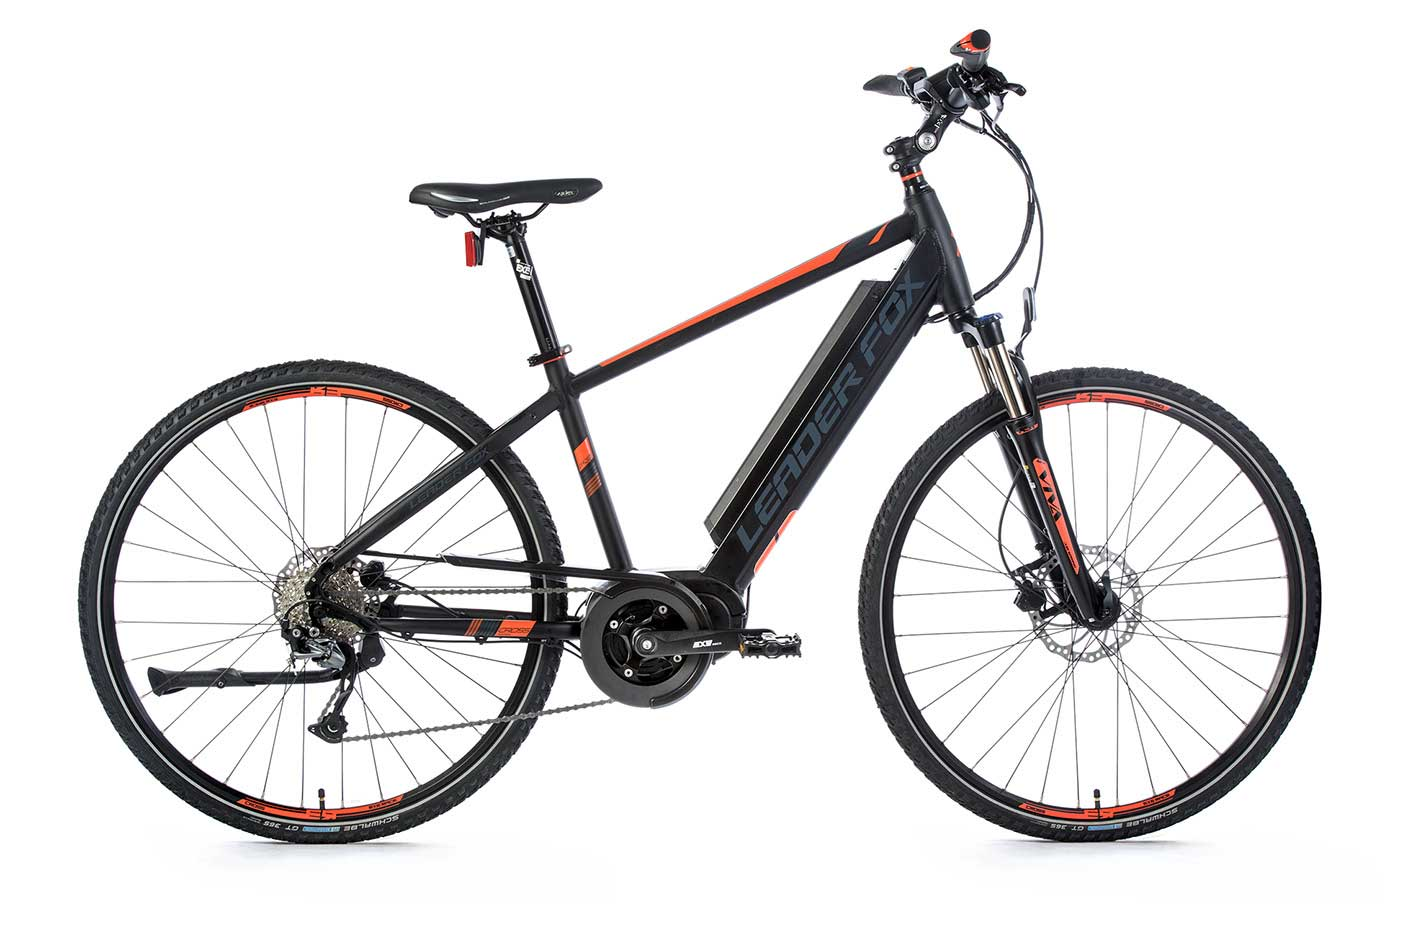 Bicicleta Electrica Cross Leader Fox BEND Gent 2018